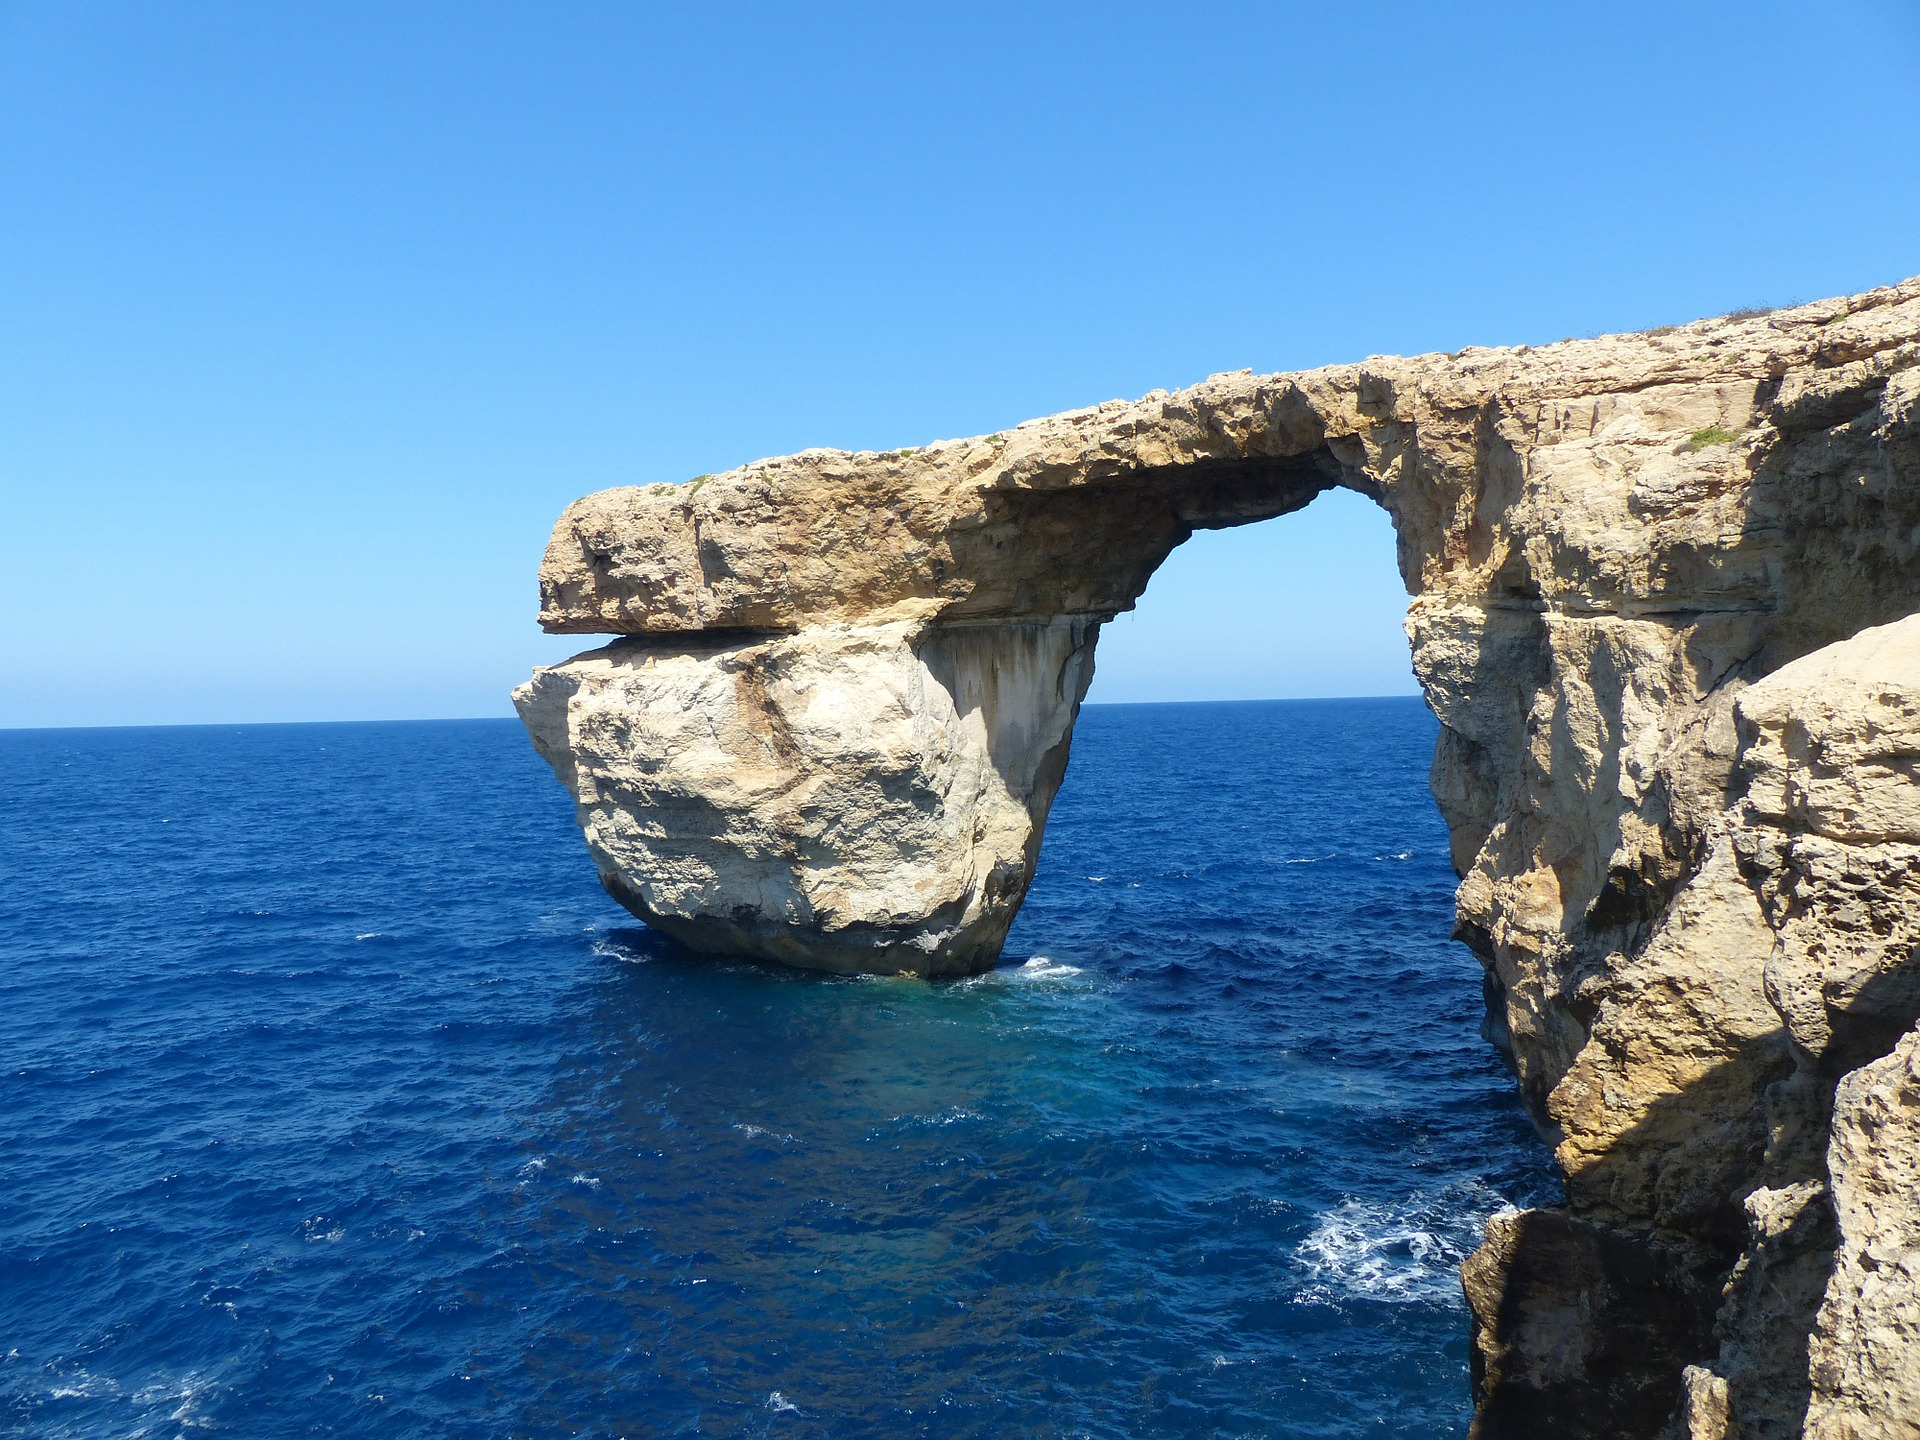 Malta's famous Azure Window rock formation, which has now collapsed